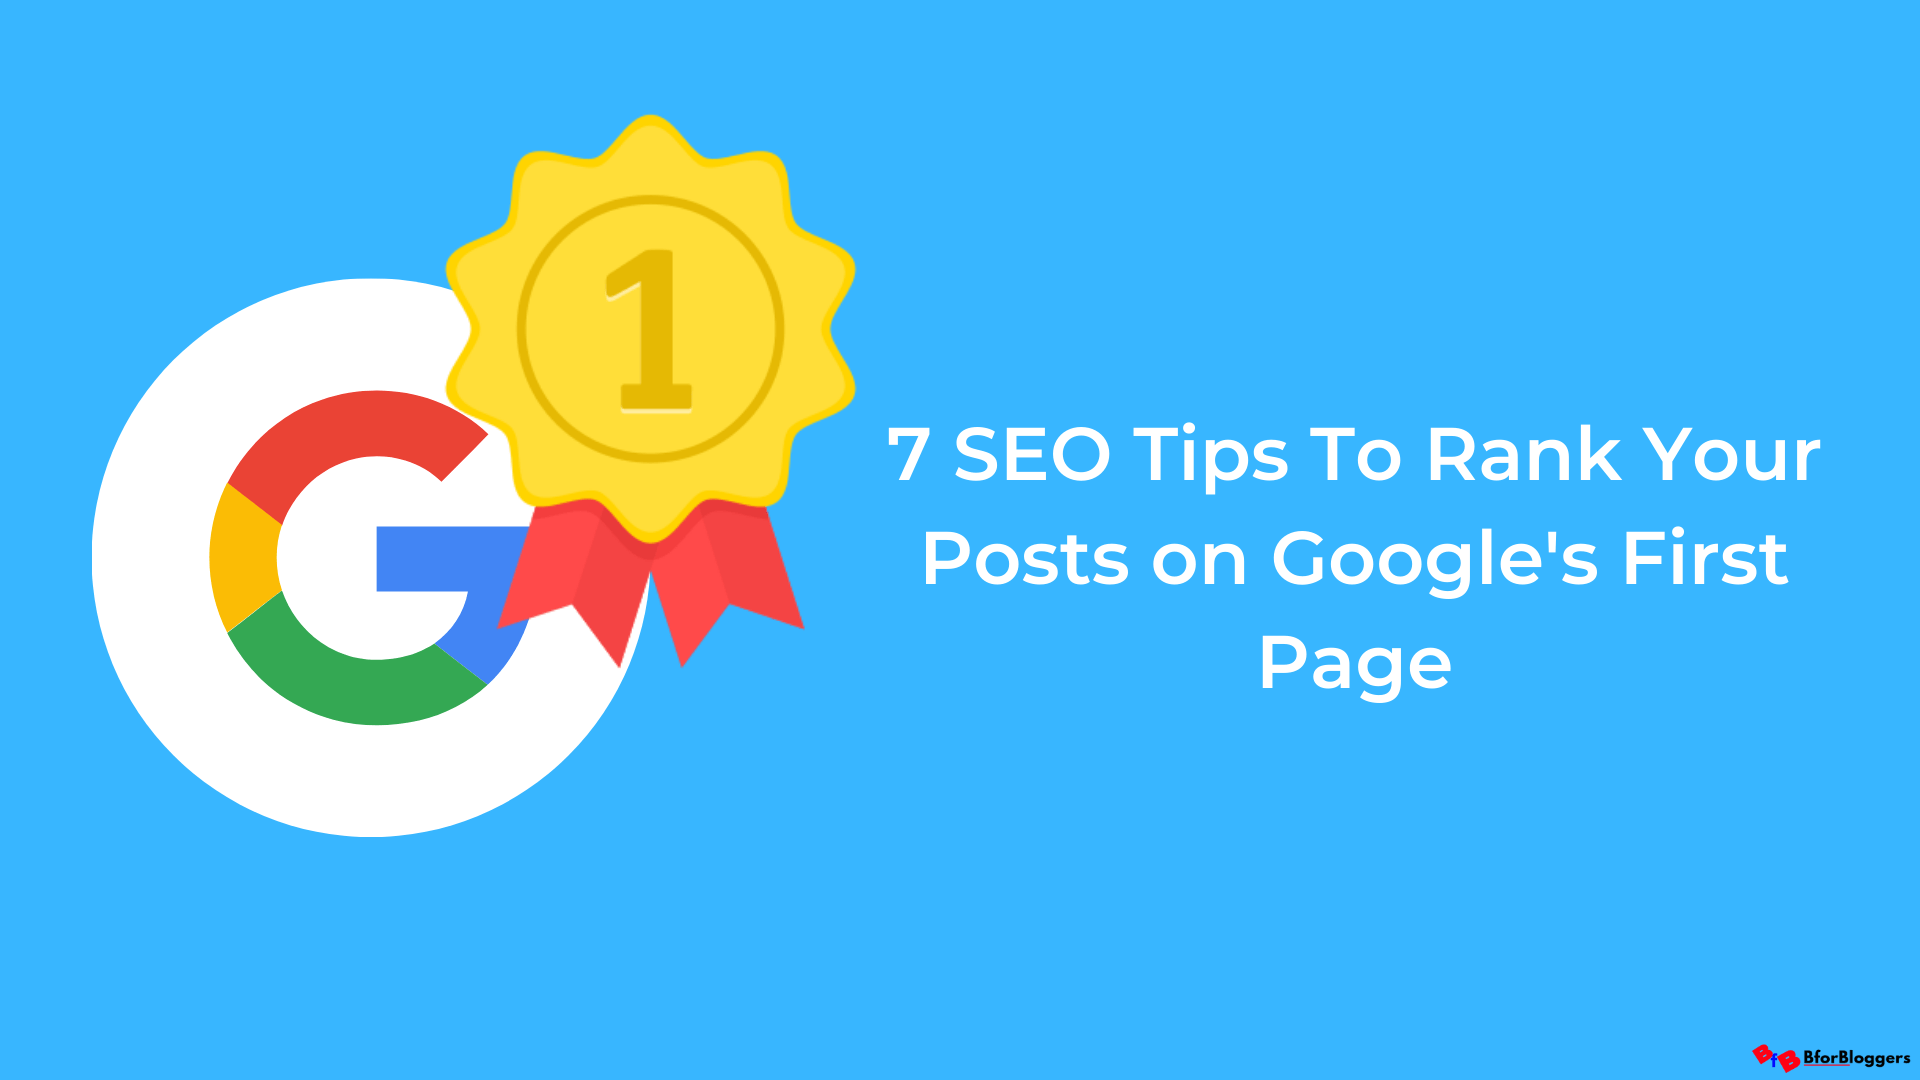 7-SEO-Tips-tp-help-you-Rank-Your-Posts-on-Google-s-First-Page